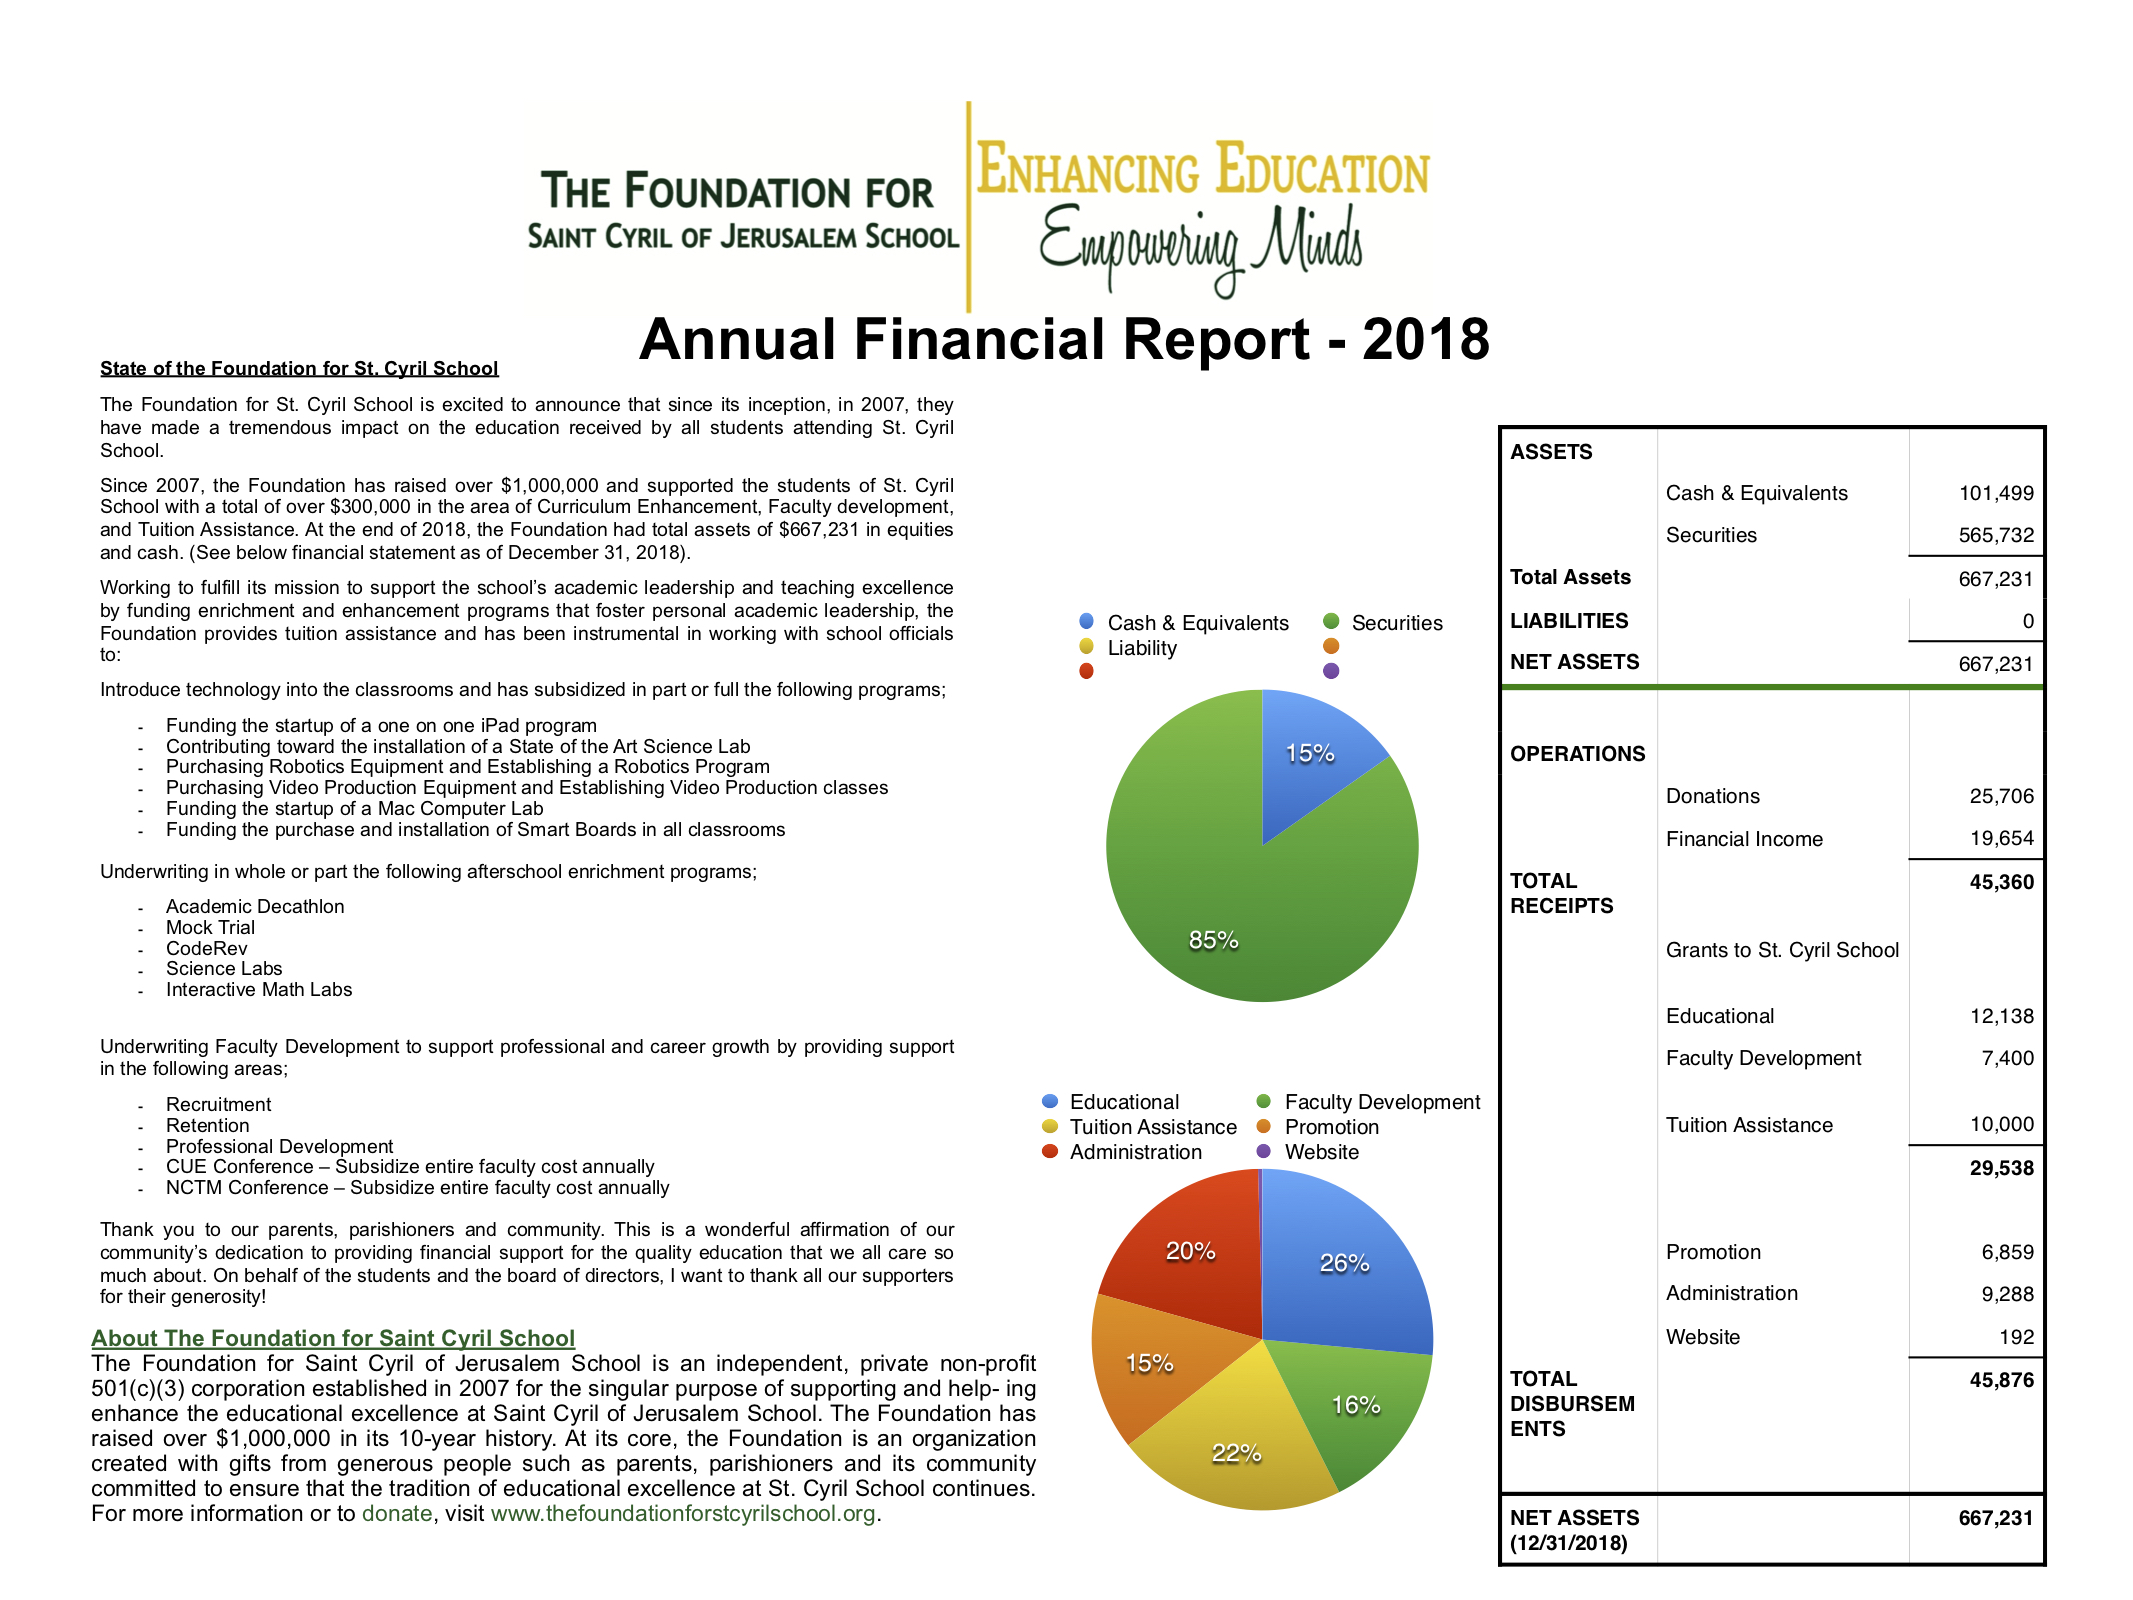 Annual Financial Report 2018.jpg